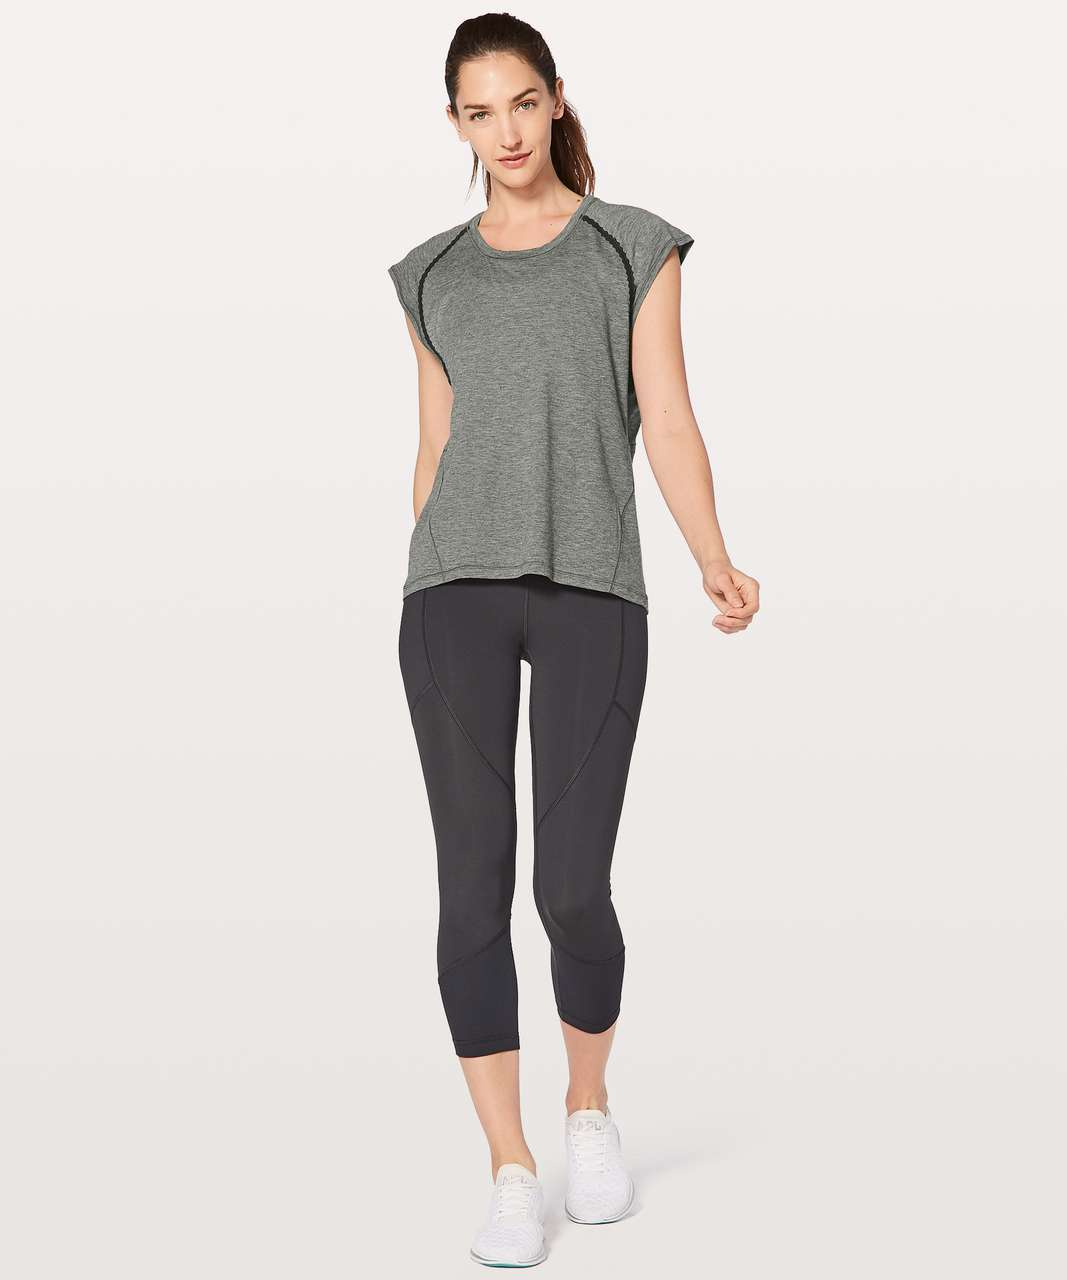 Lululemon Stop Drop & Squat Short Sleeve - Heathered Black